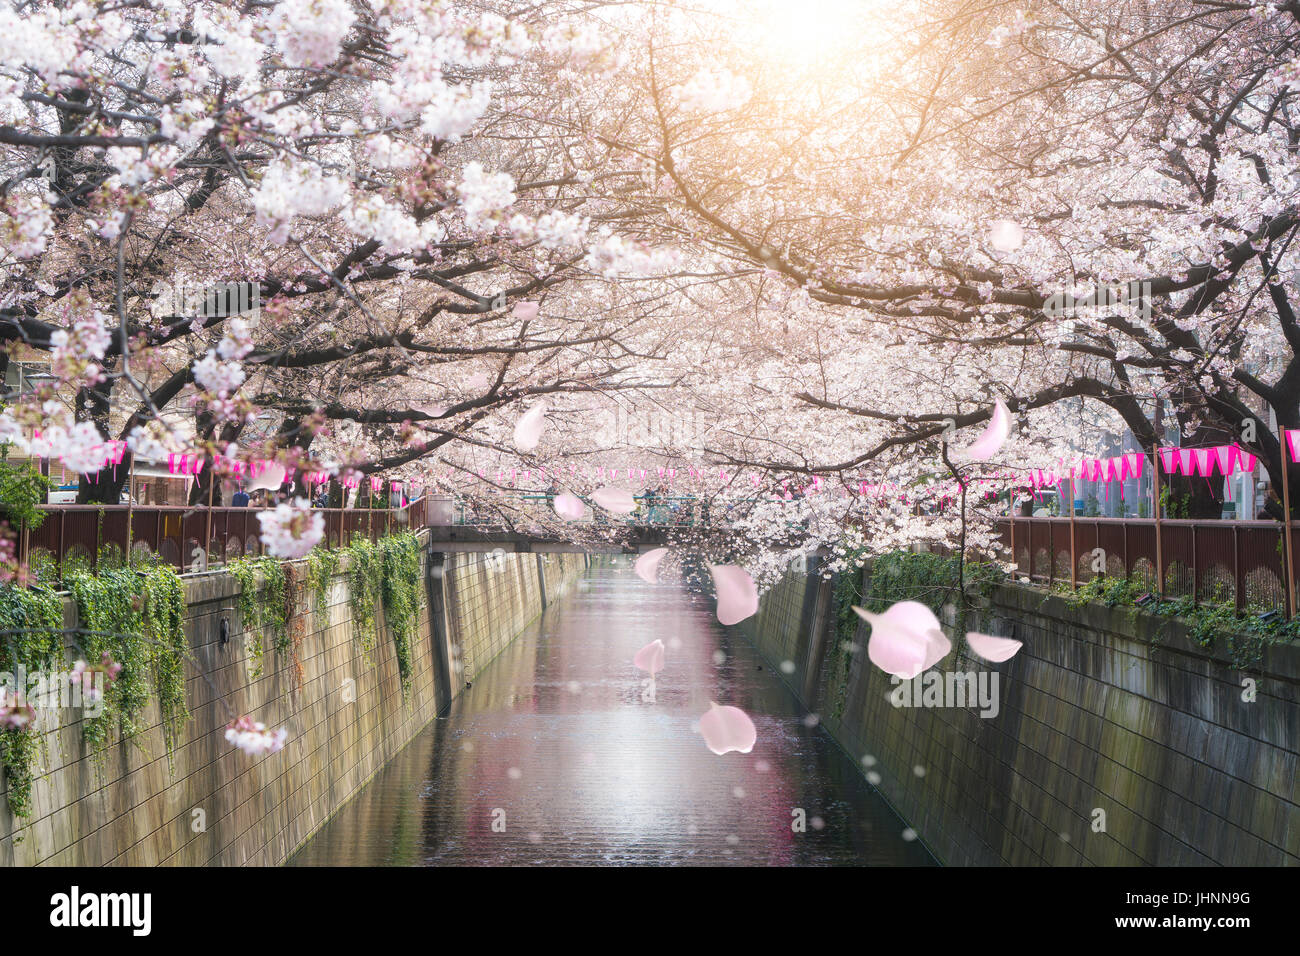 Cherry blossom lined Meguro Canal in Tokyo, Japan. Springtime in April in Tokyo, Japan. - Stock Image